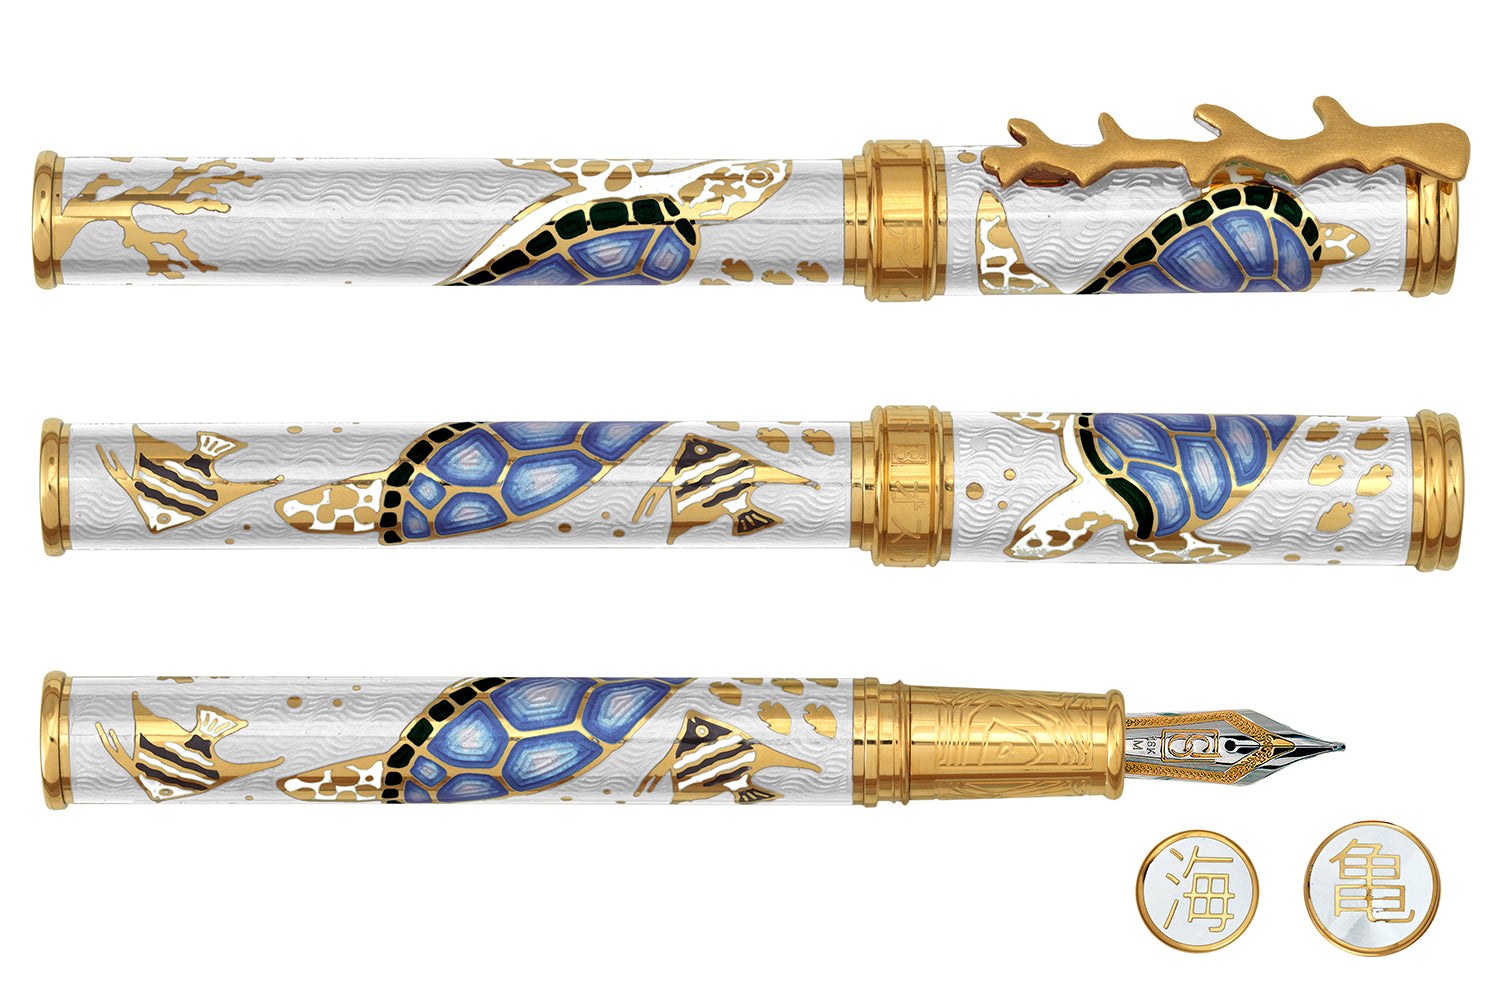 David Oscarson Sea Turtle Fountain Pen - White/Blue